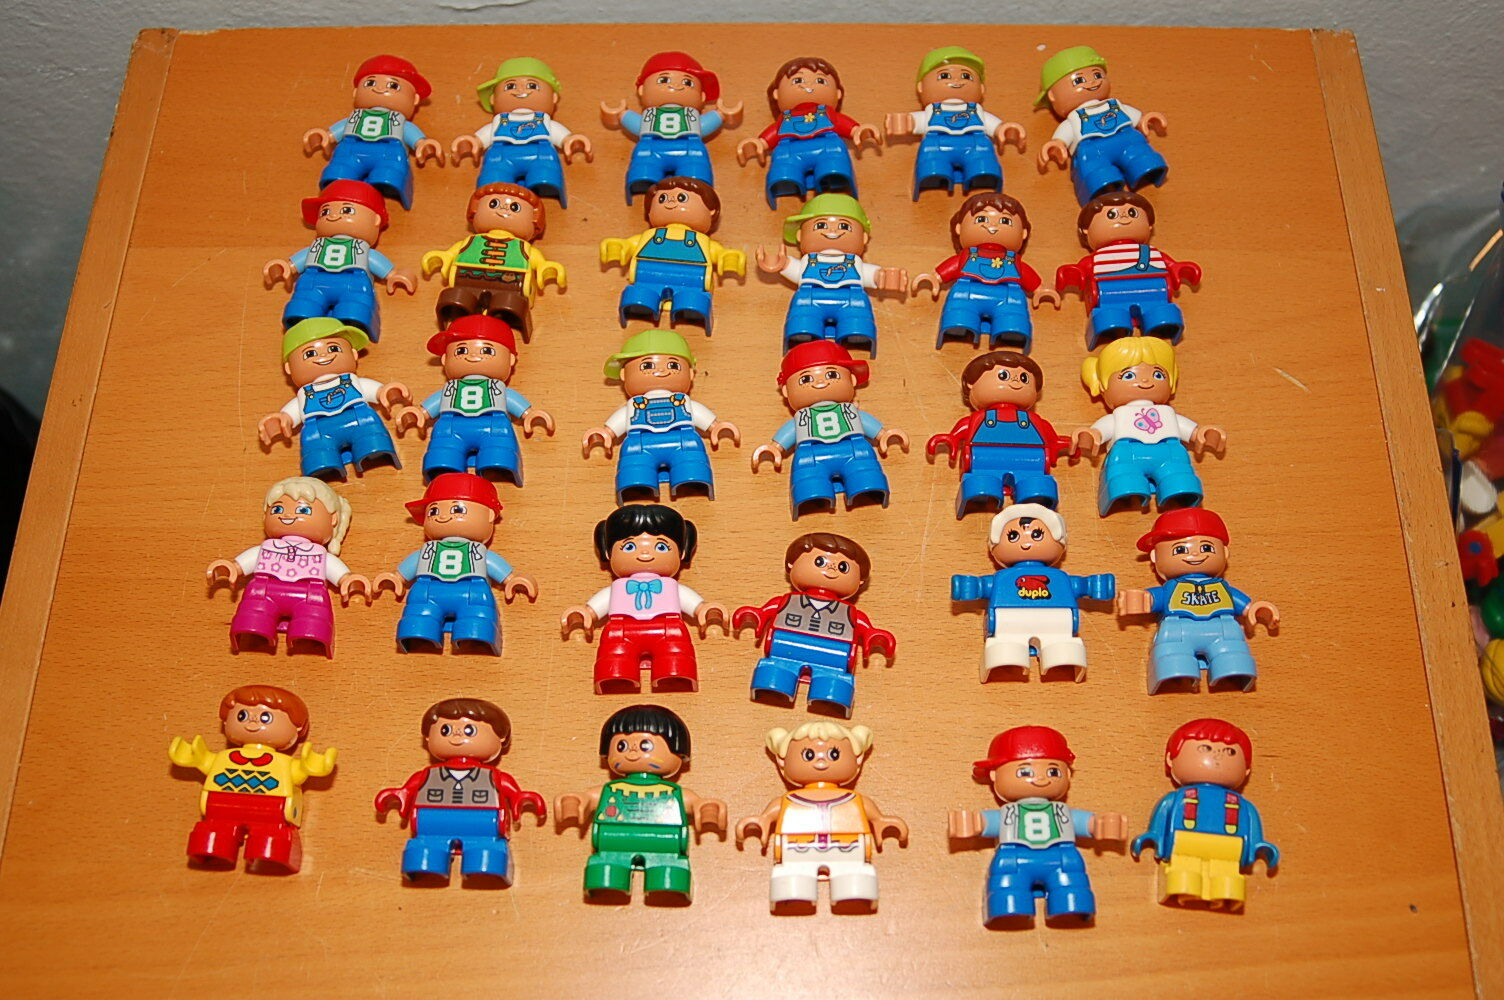 Lot of 30 Lego Lego Lego Duplo Toddlers Kids Girls & Boys Baby Figures b7a23d